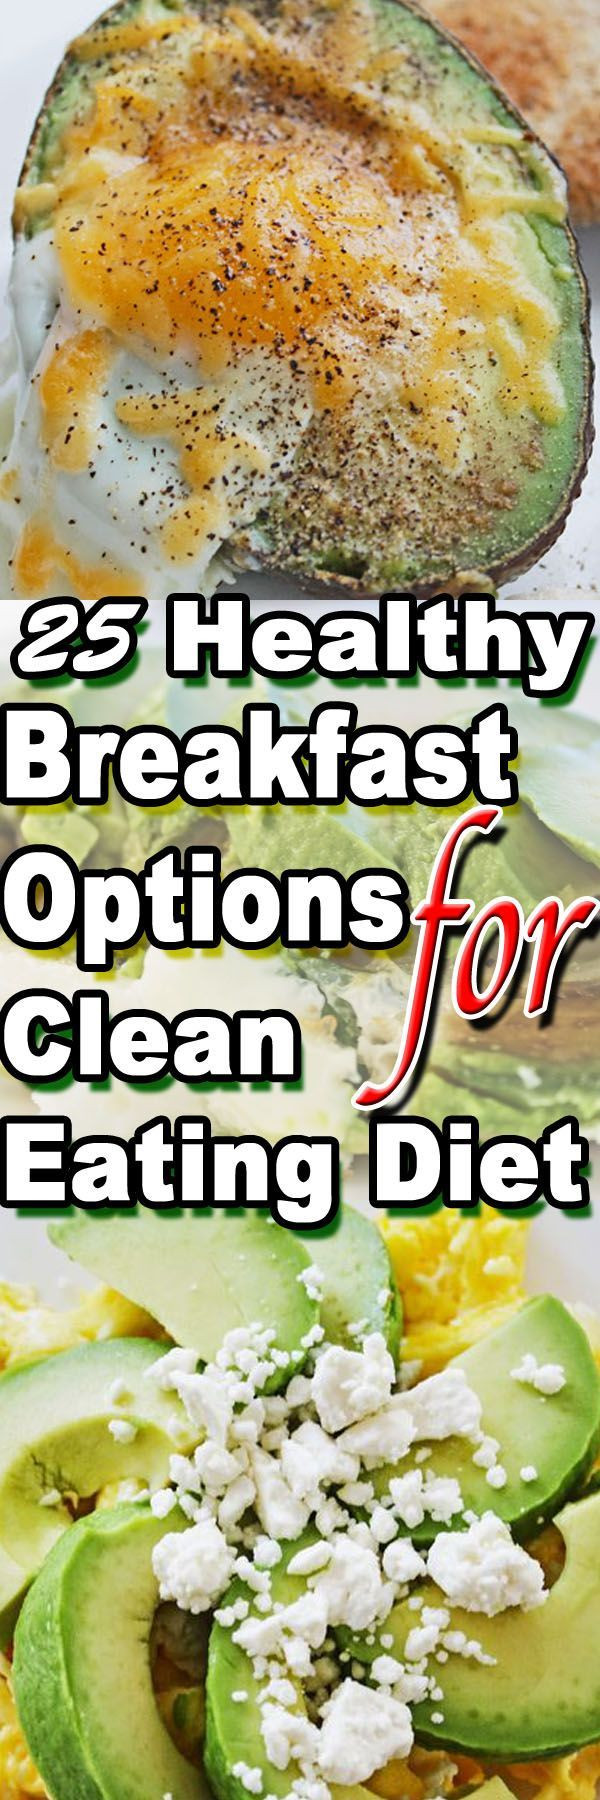 Healthy Recipes For Teenage Weight Loss  Best 25 Teen t plan ideas on Pinterest